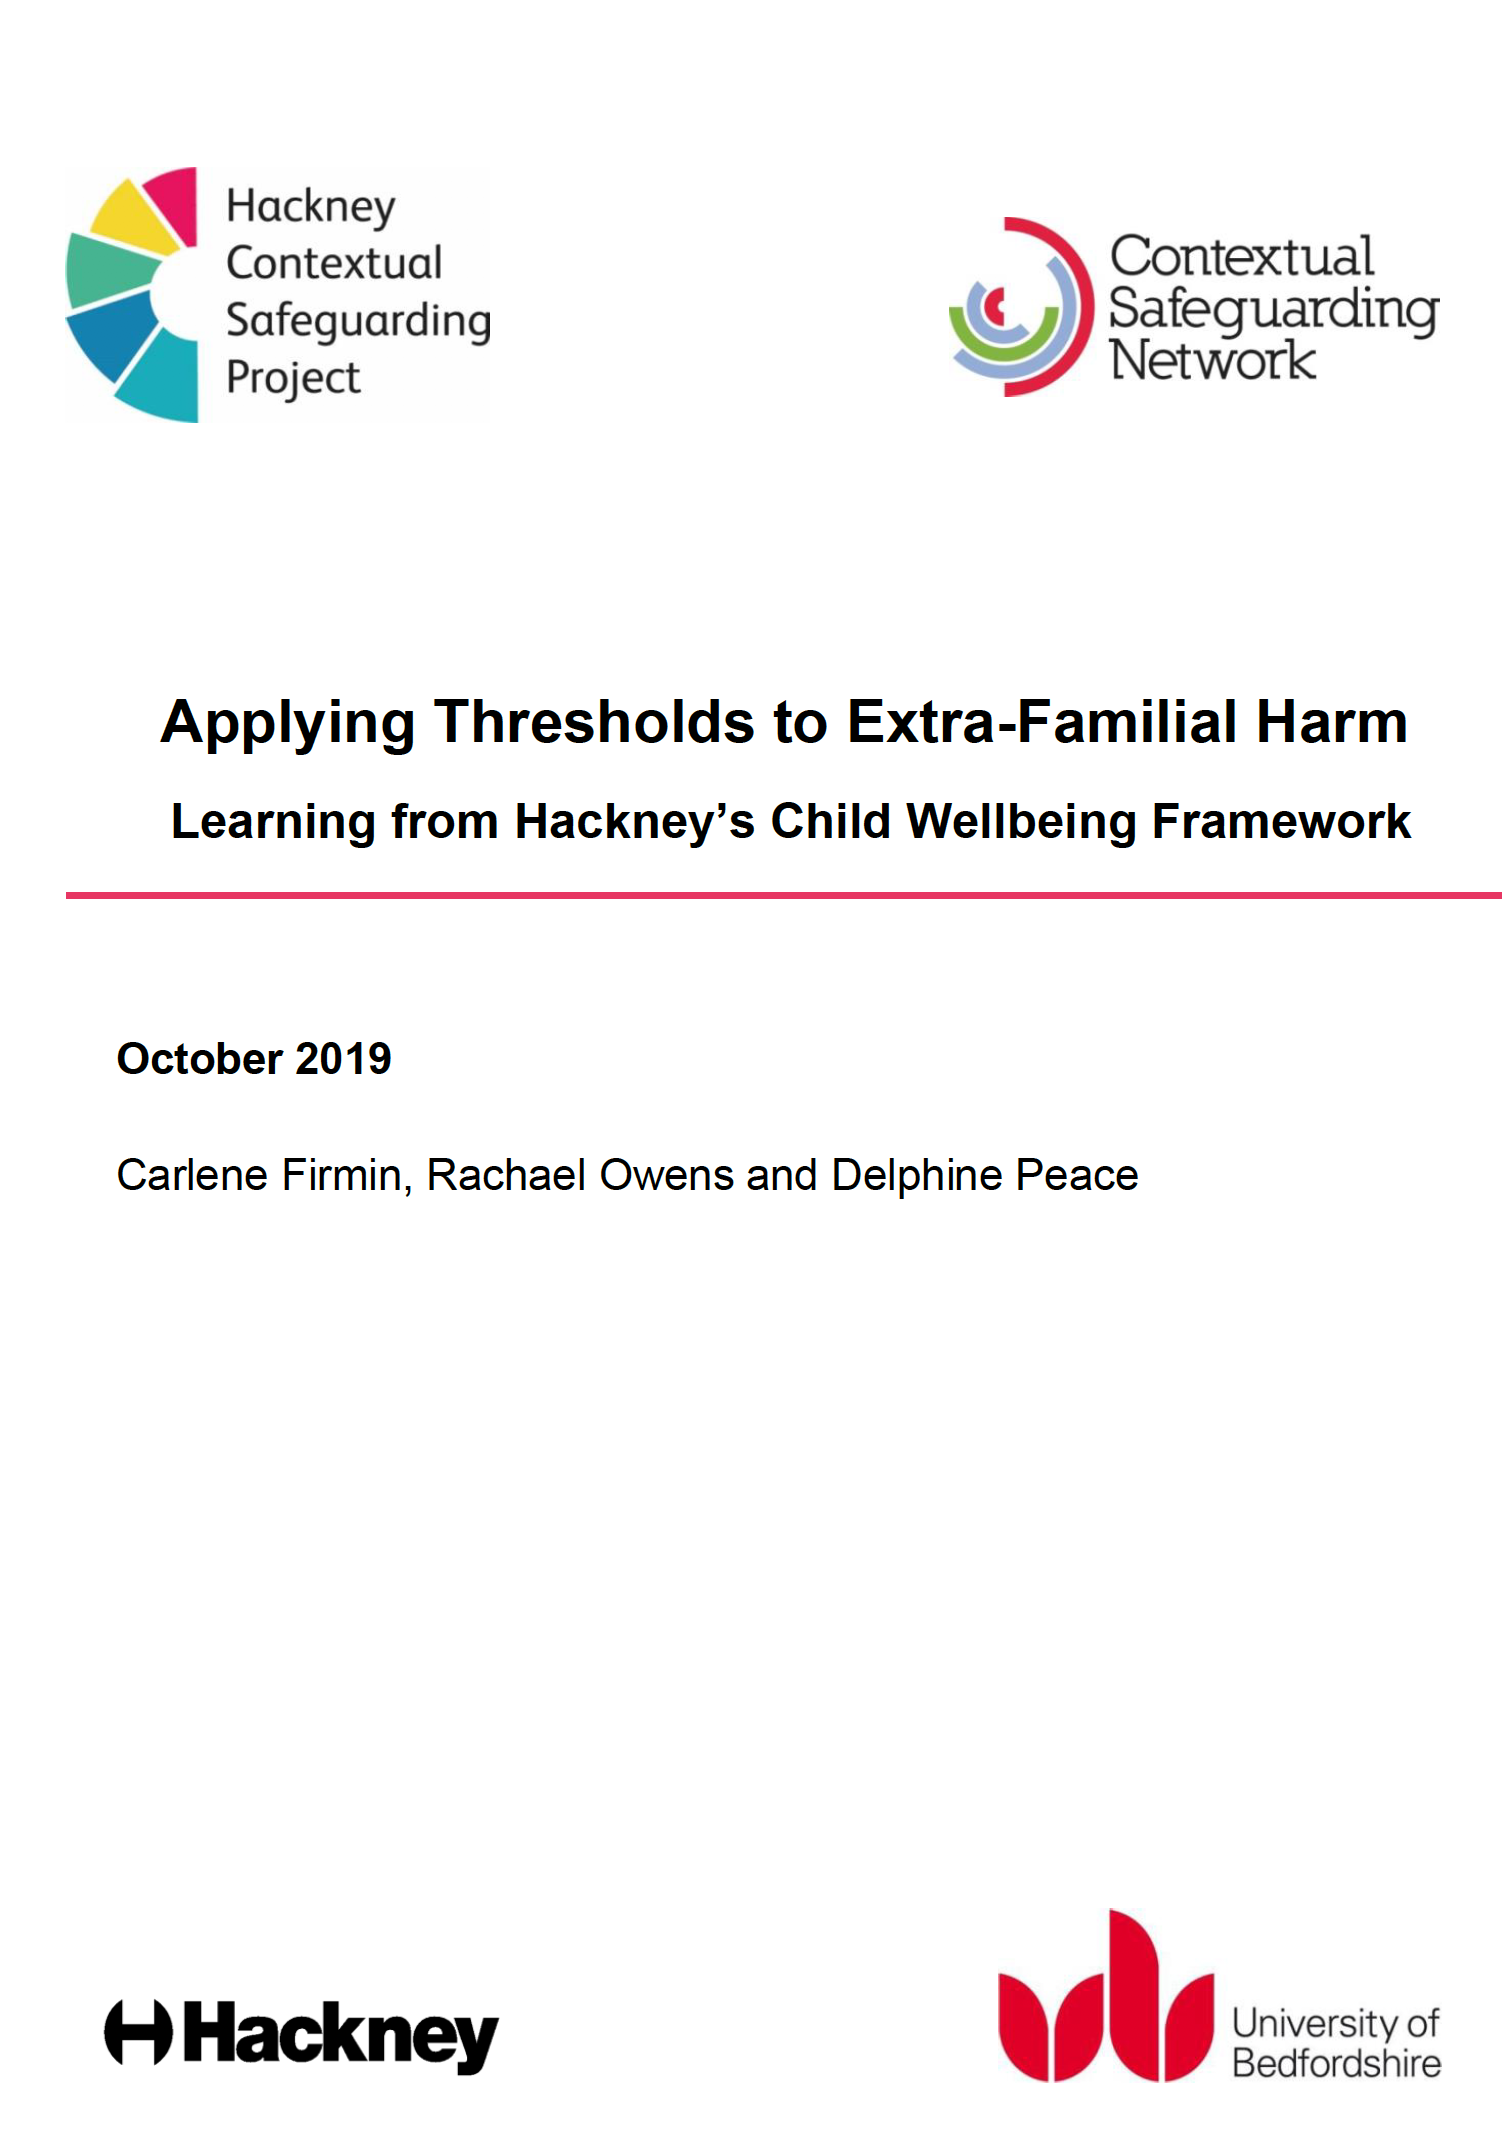 Applying thresholds to extra-familial harm: a briefing